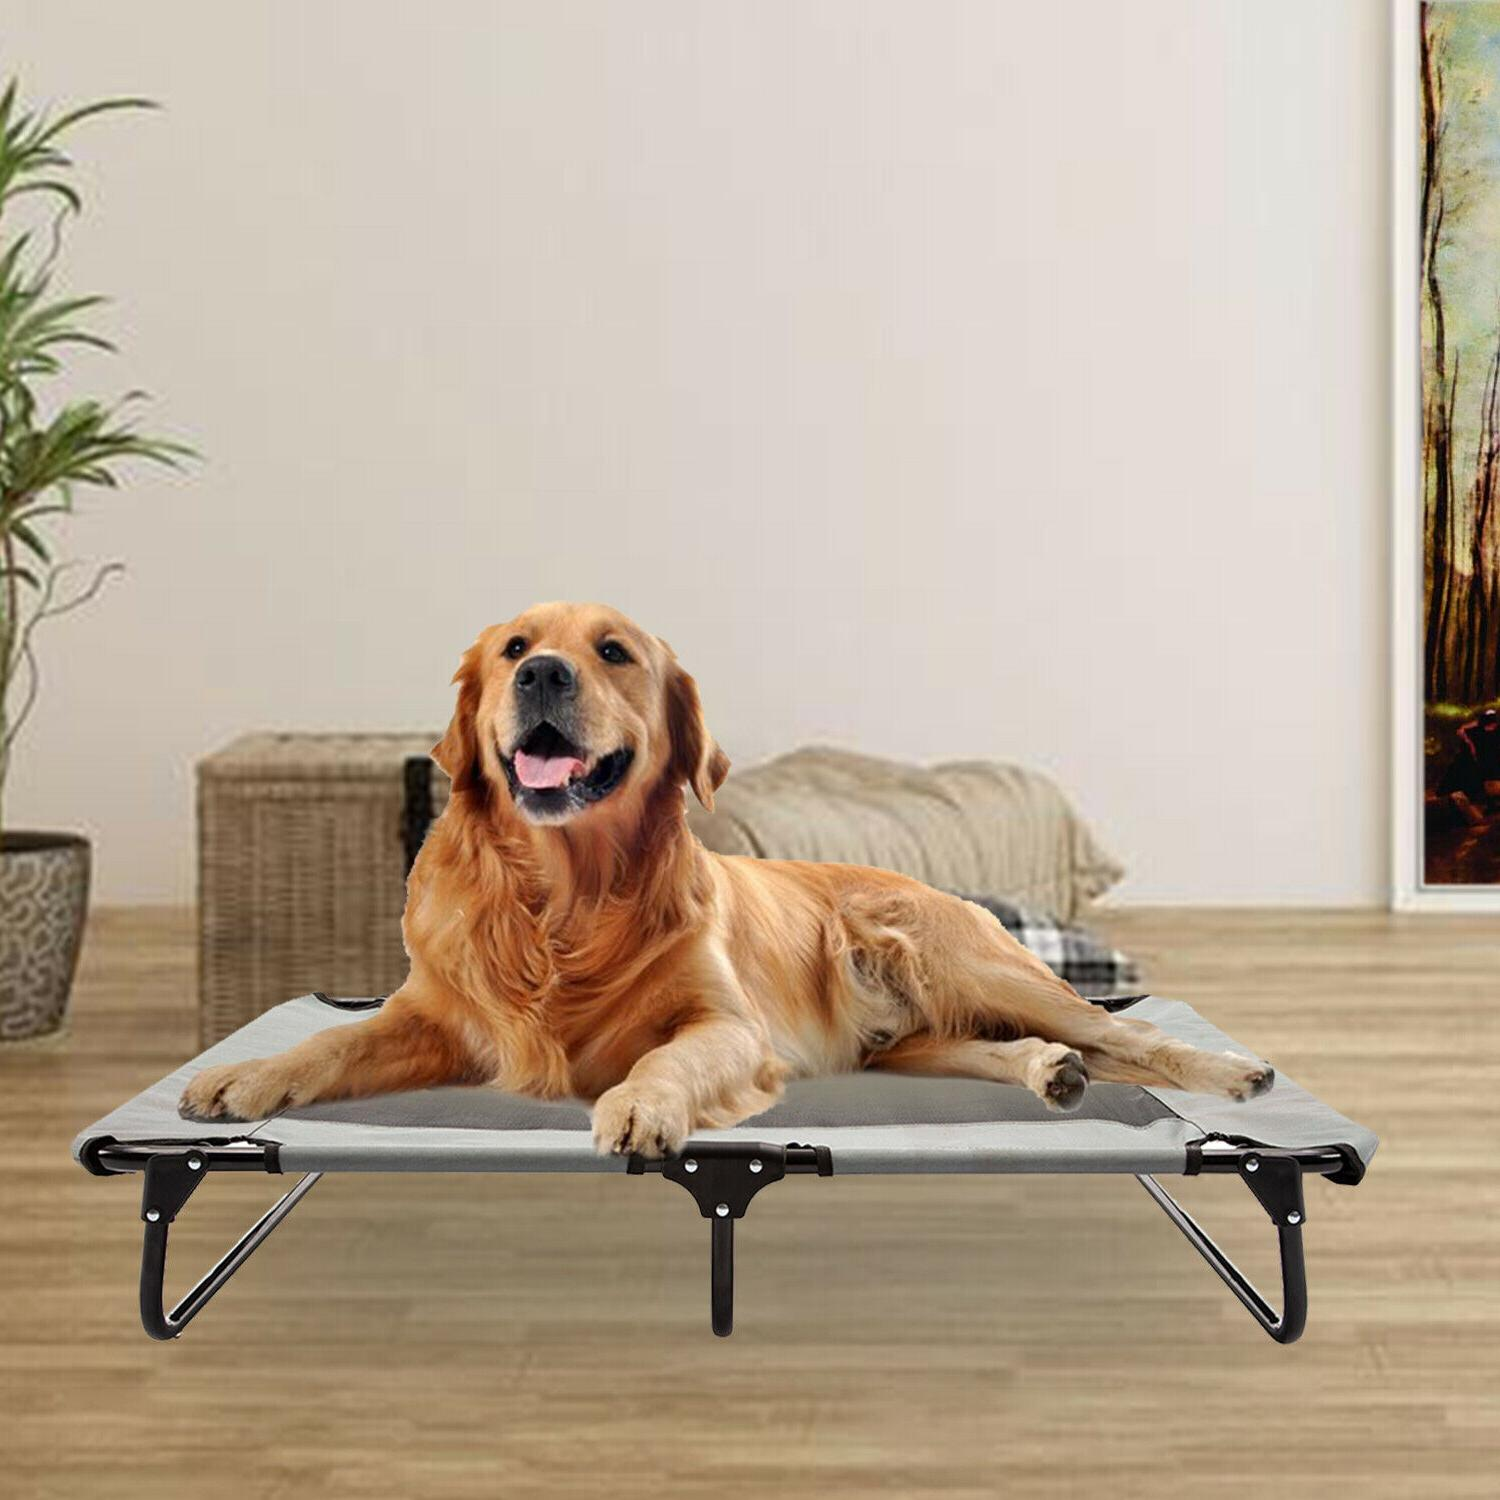 XXL Large Elevated Pet Bed Dog Raised Hammock Folding Breath